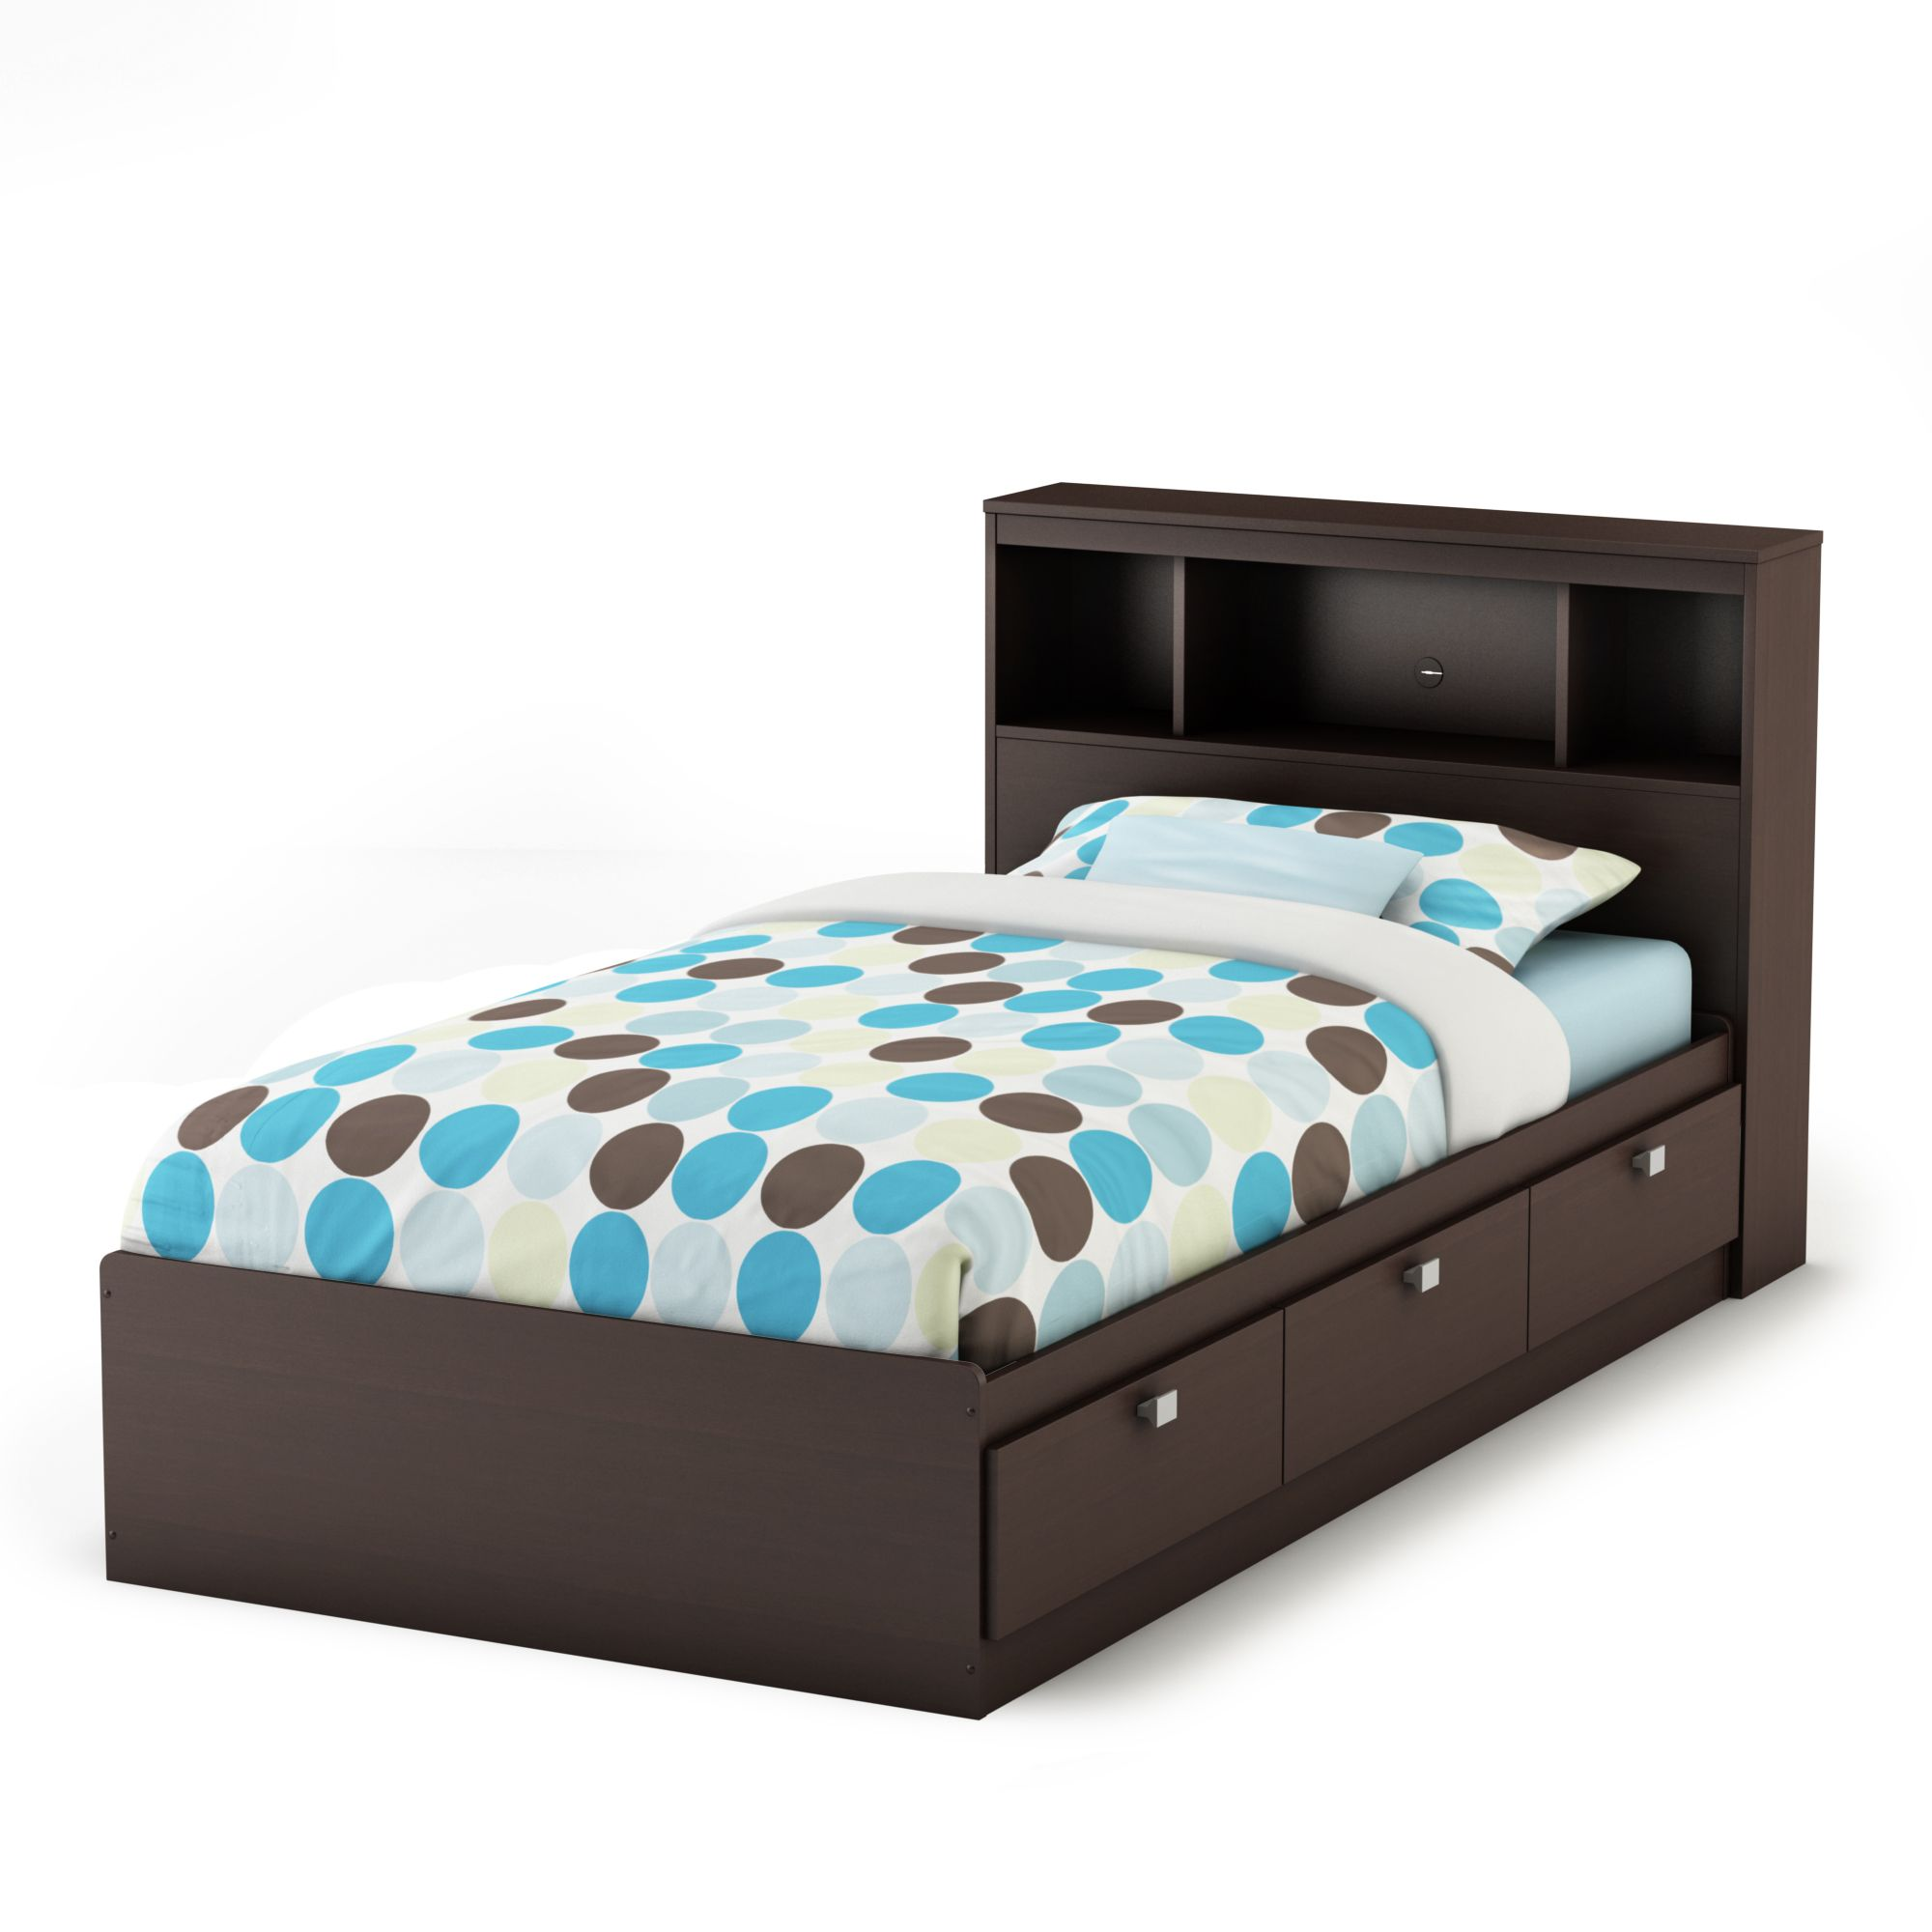 Manero Twin Bookcase Headboard - Chocolate                                                                                       at mygofer.com